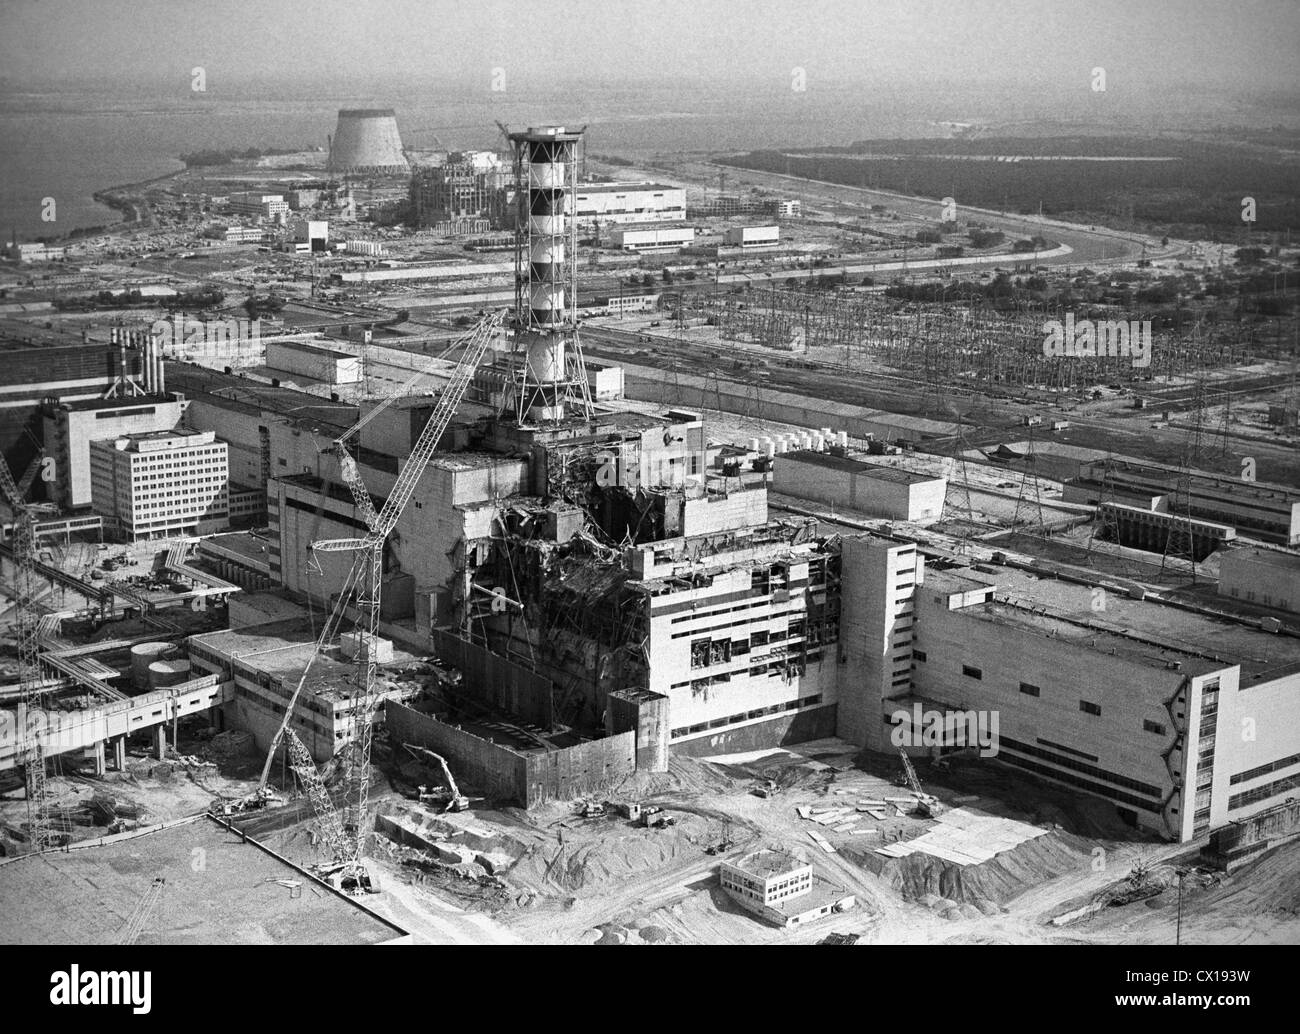 Kiev region. The Chernobyl Nuclear Power Plant. The construction of a defensive wall at the 4th power generating - Stock Image